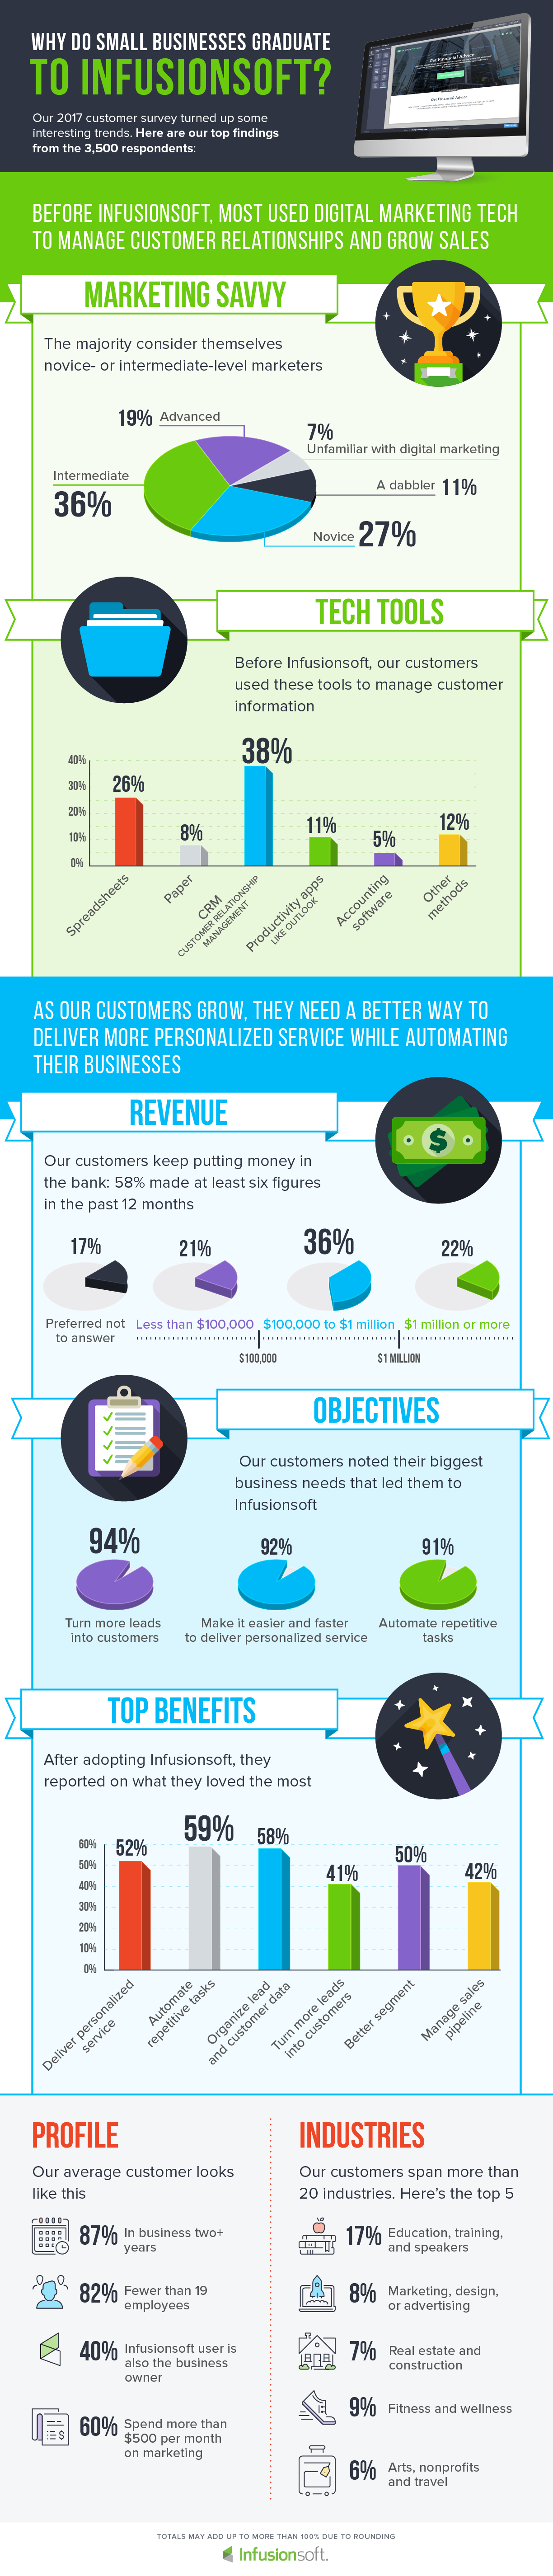 Infusionsoft Customer Infographic